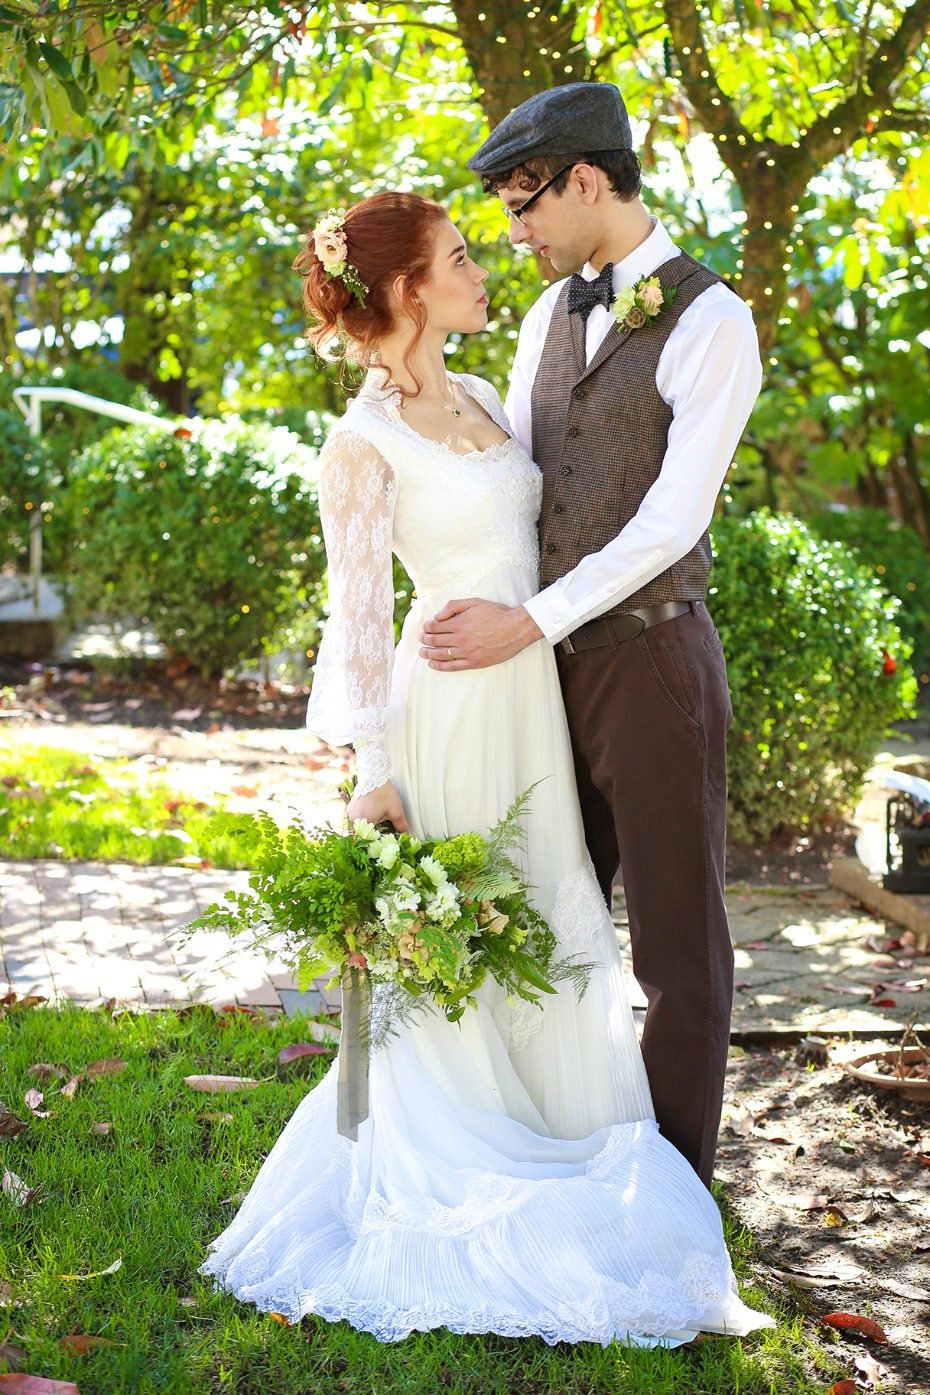 Classic Vintage Wedding Ideas Inspired By Anne Of Green Gables